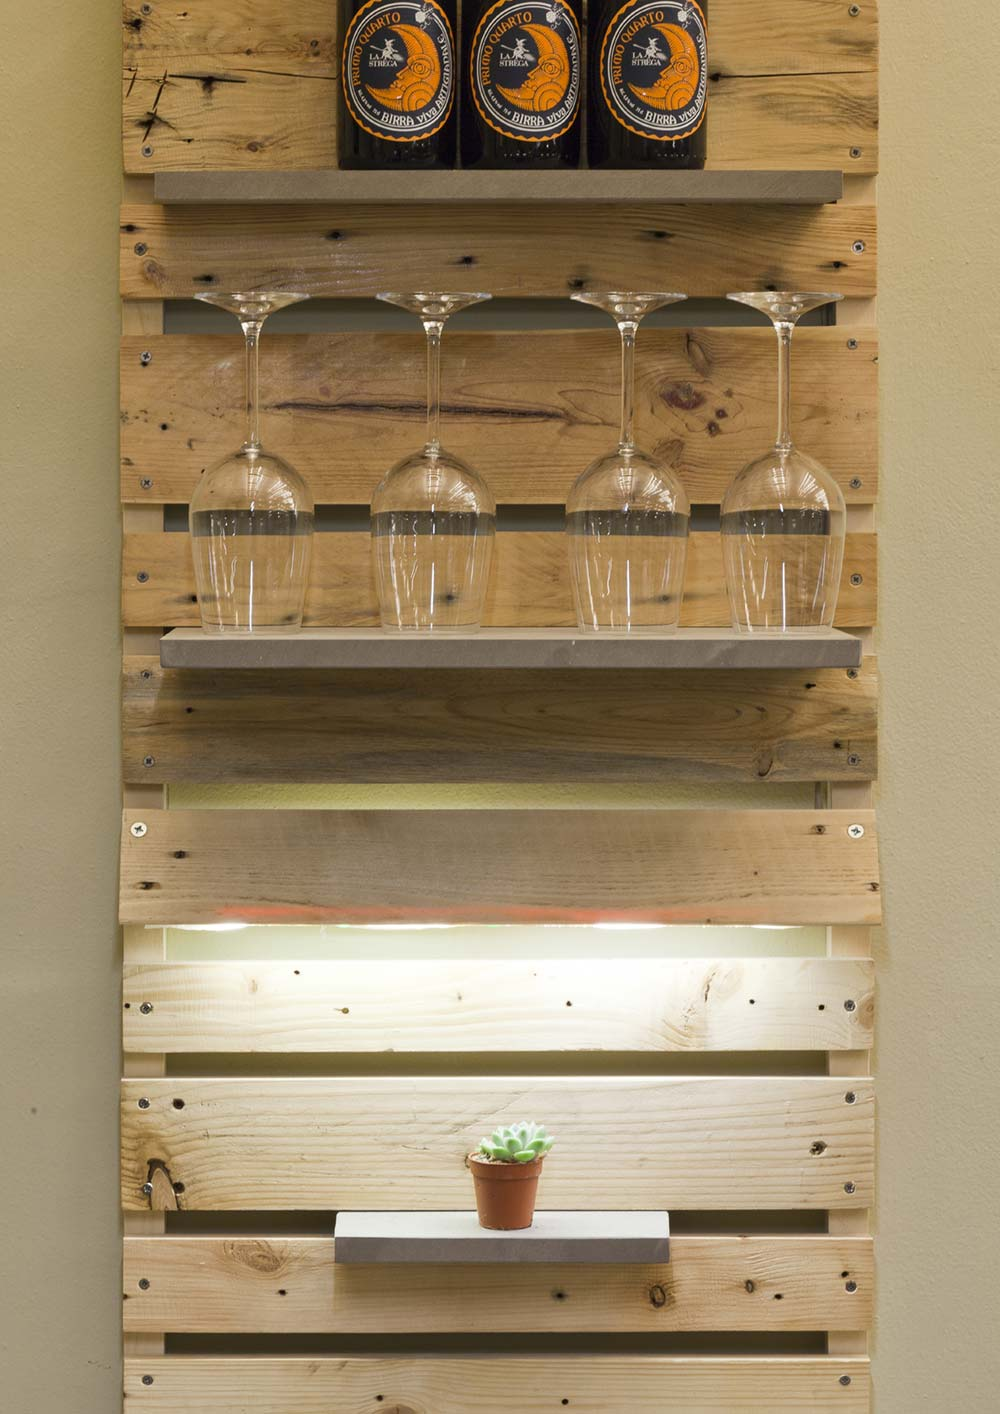 wood pallets shelf design llabb3 - La Strega Bar